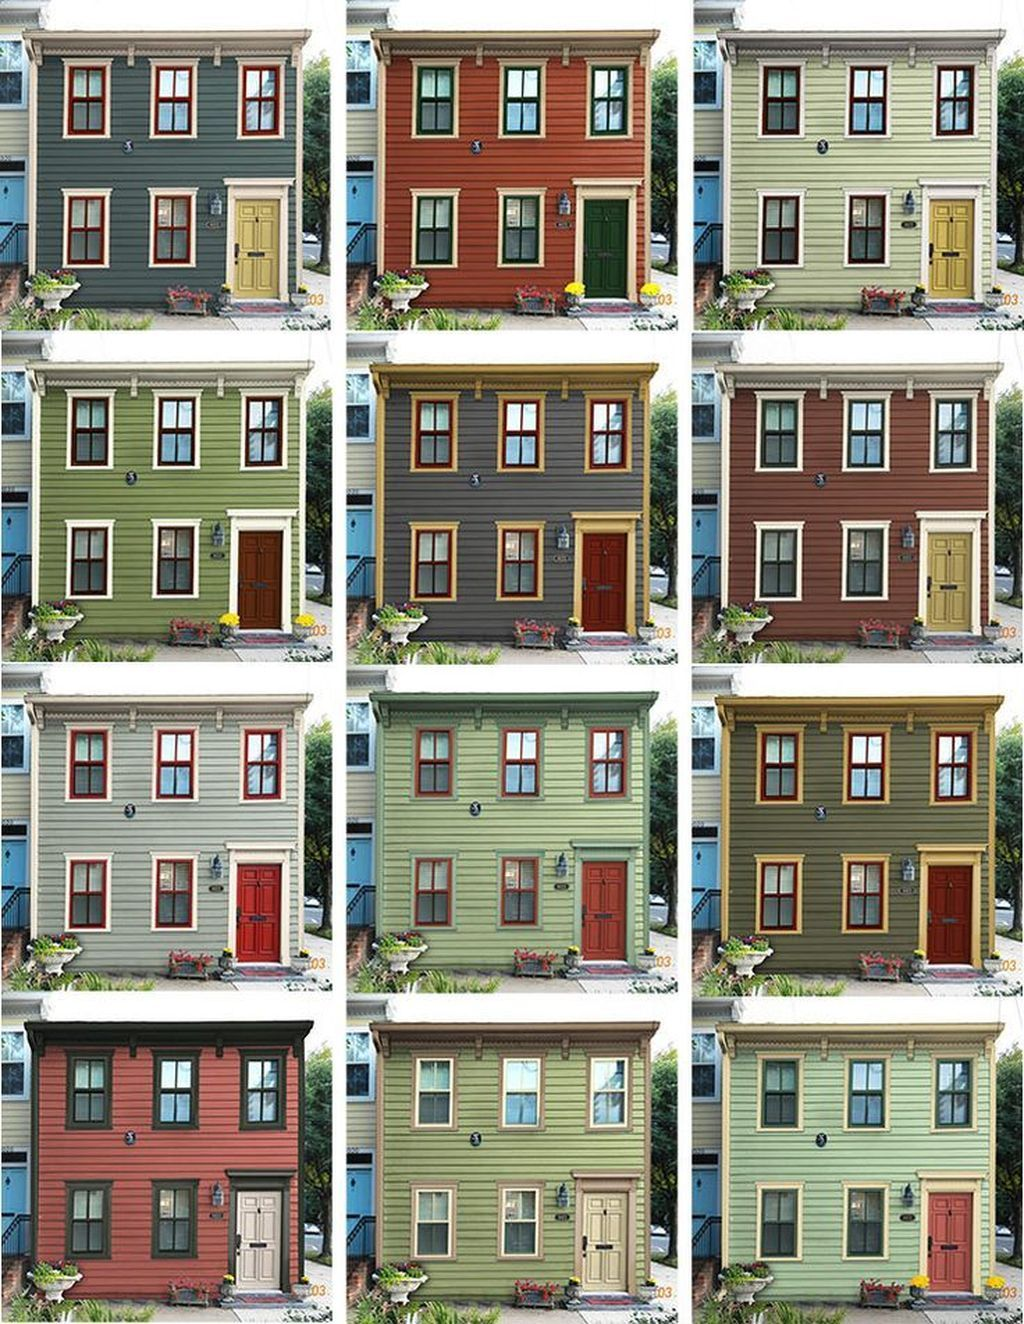 50 Victorian House Polychrome Paint Schemes Ideas There Are Basi House Exterior Color Schemes Exterior House Paint Color Combinations Victorian House Colors